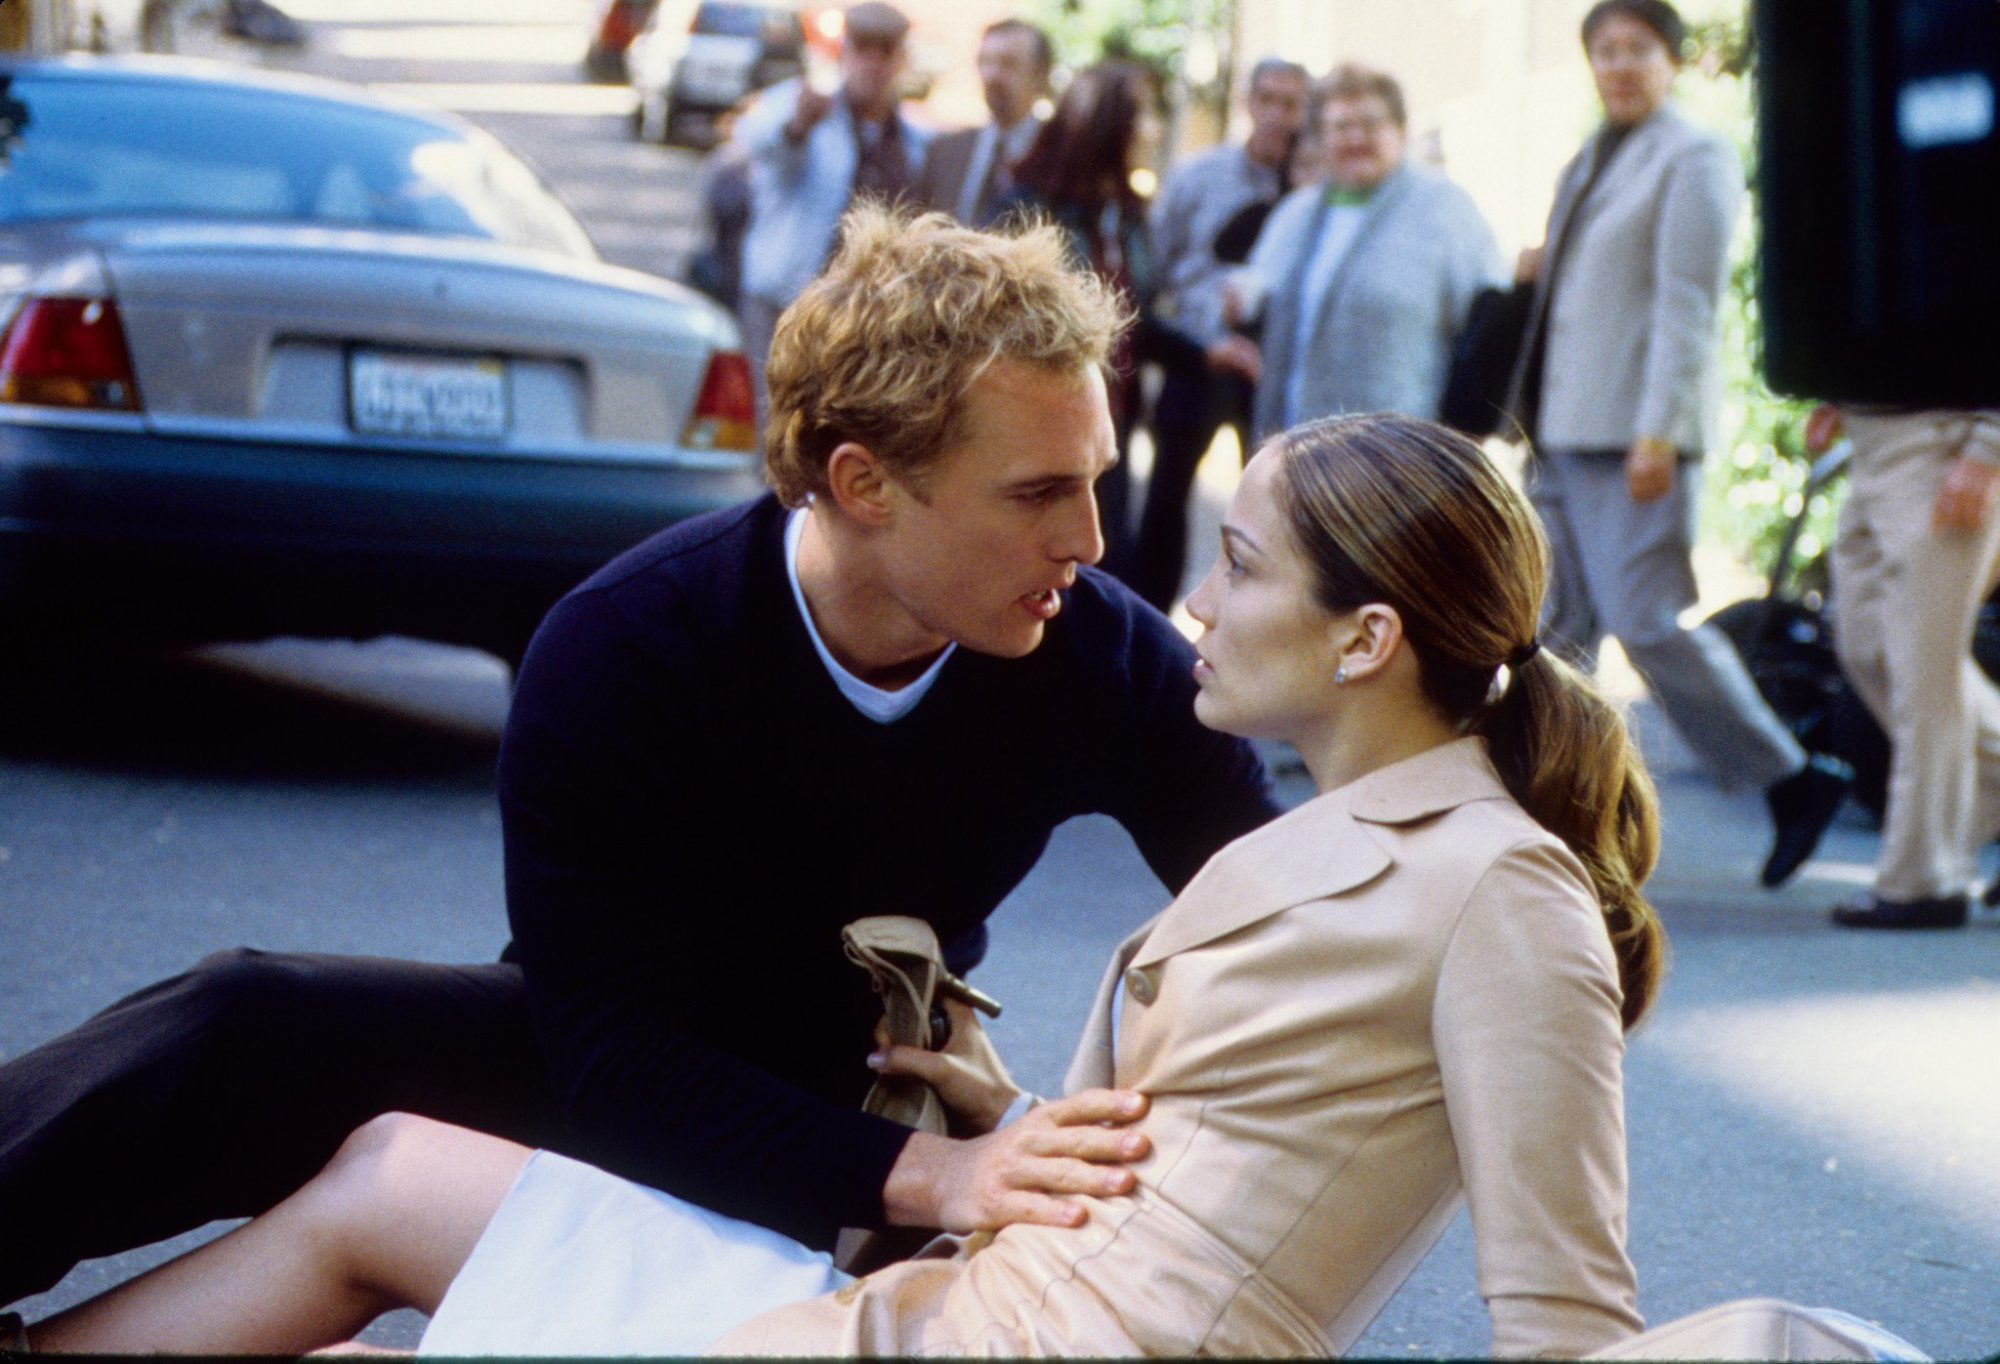 3. The Wedding Planner (2001)